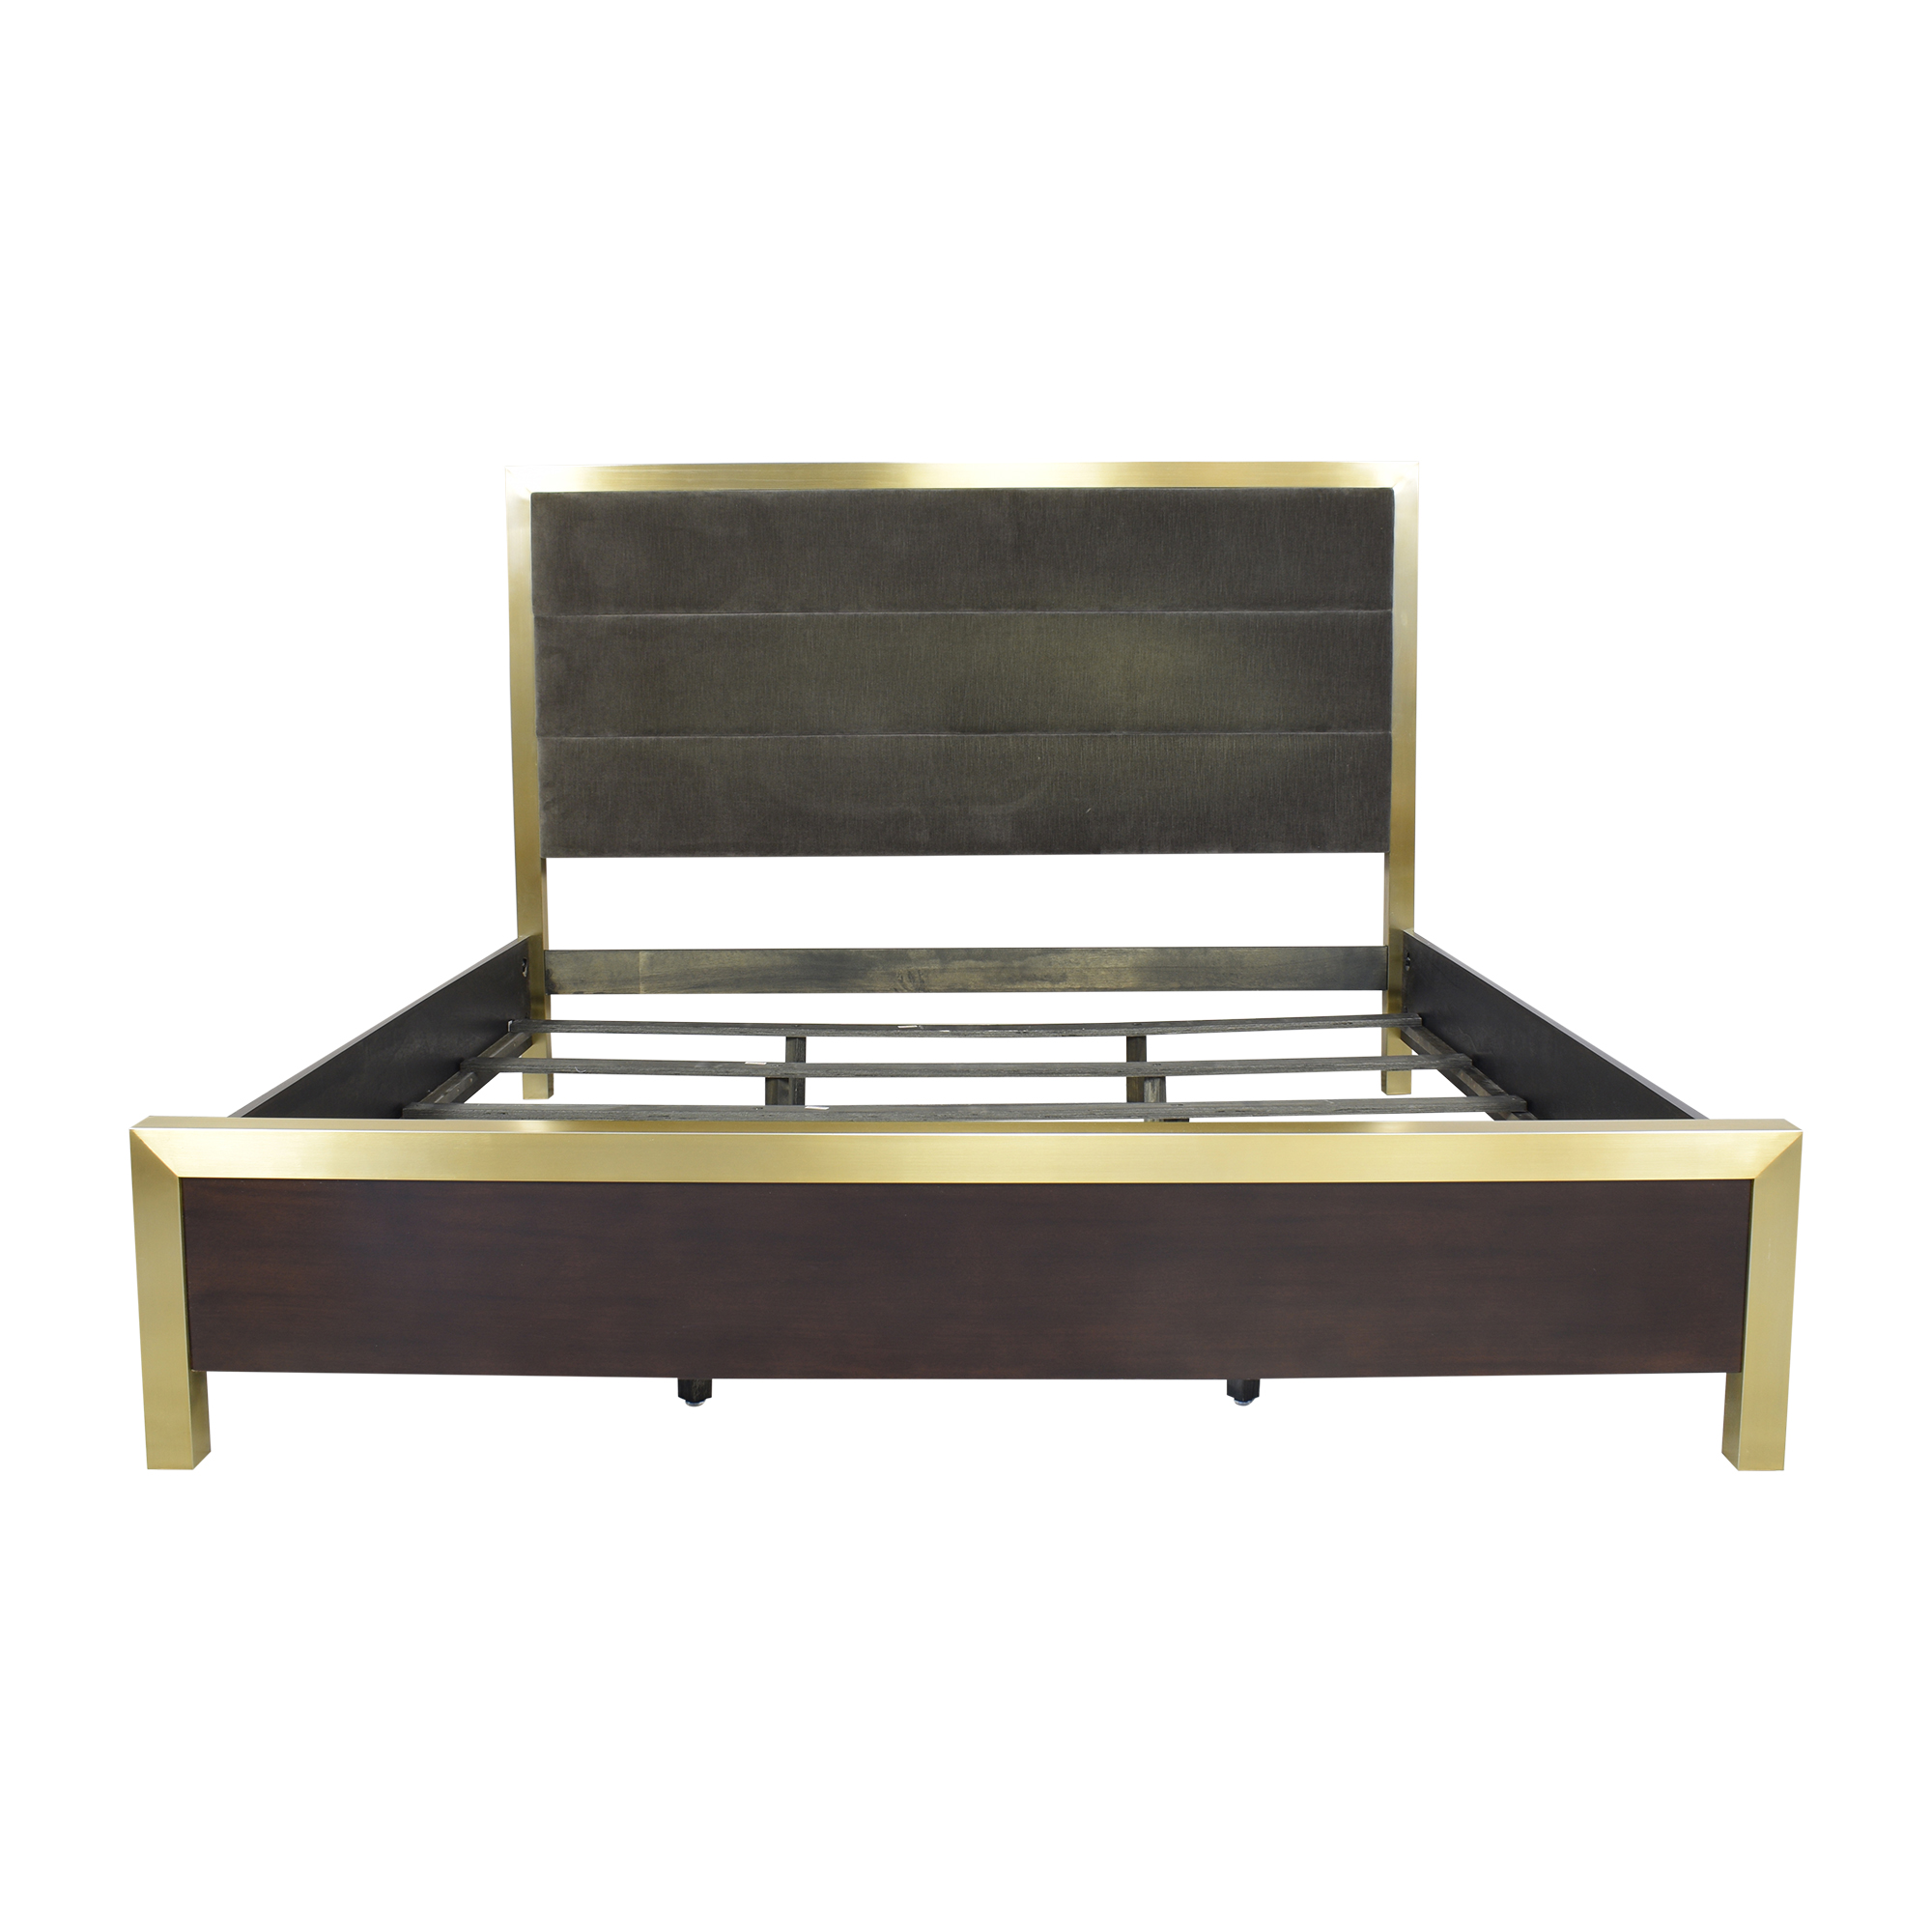 Macy's Jameson King Bed / Bed Frames